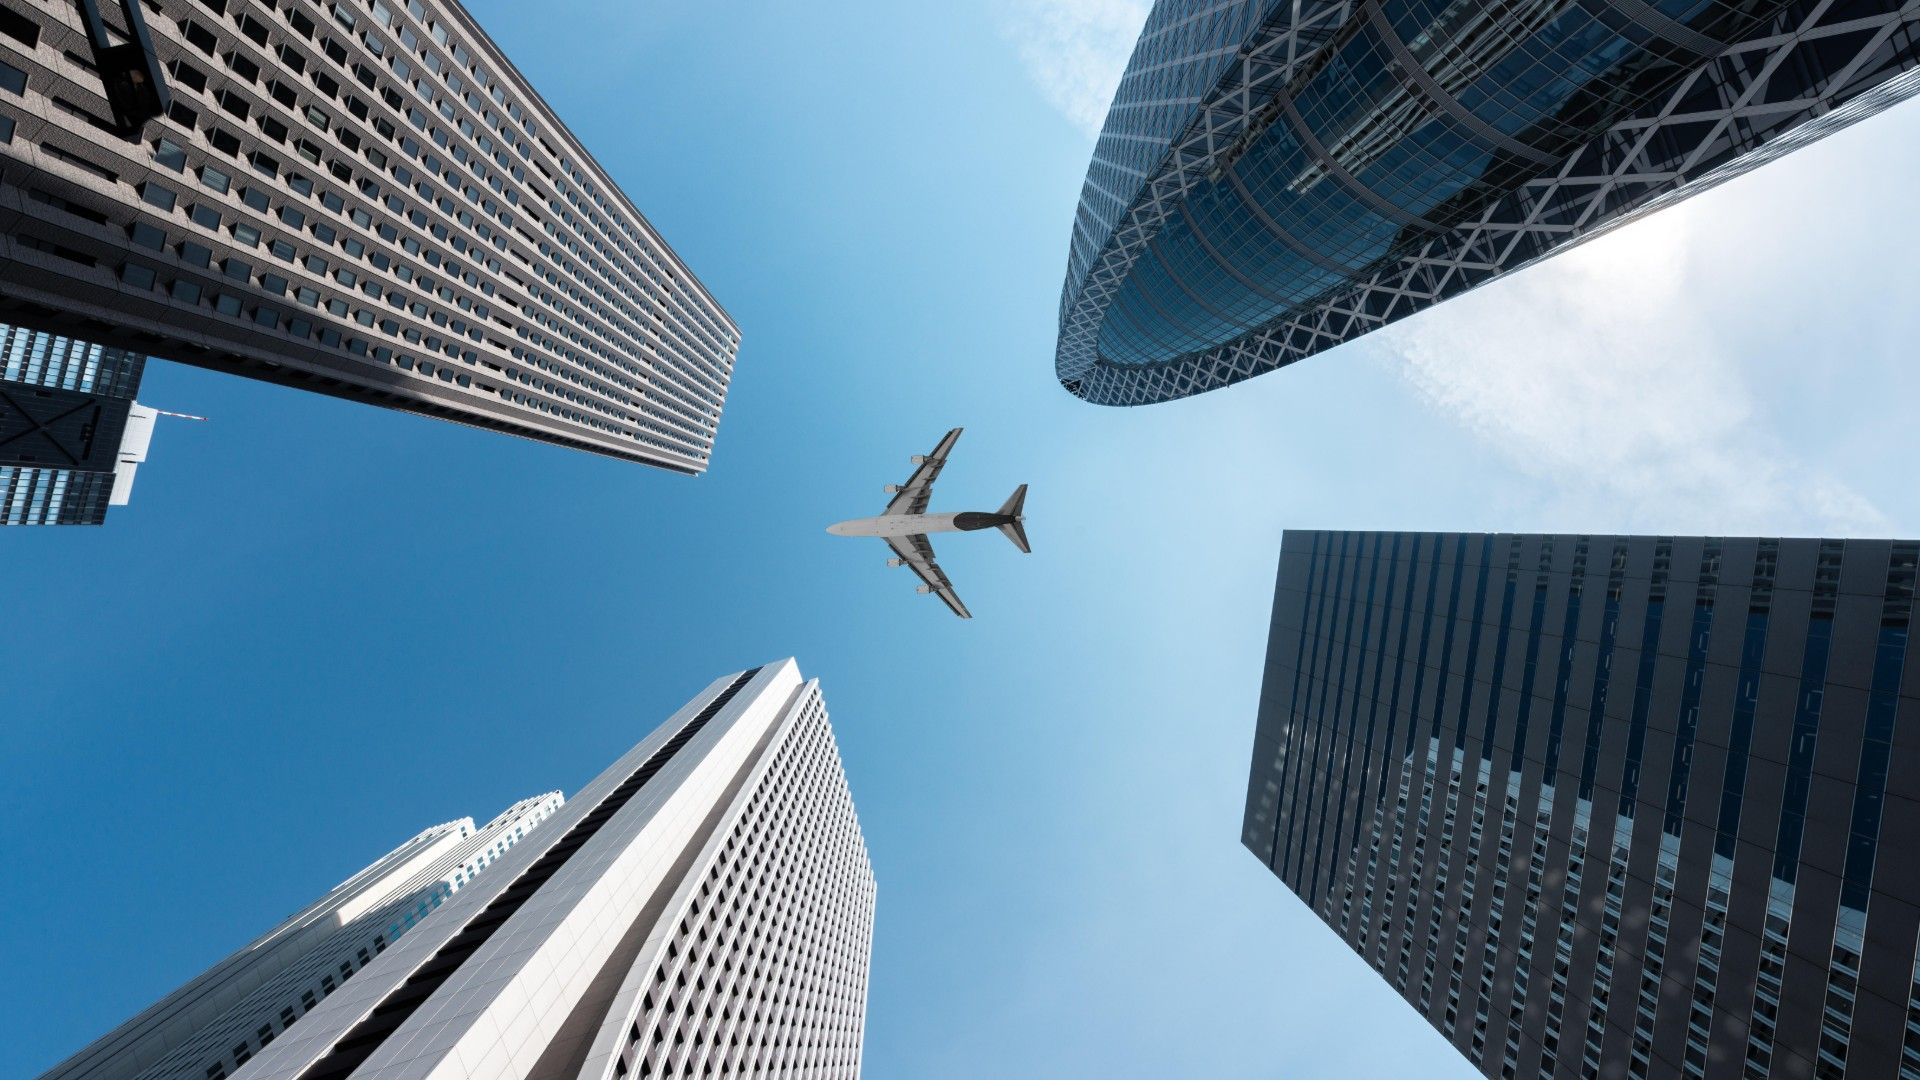 File image of a plane flying over skyscrapers